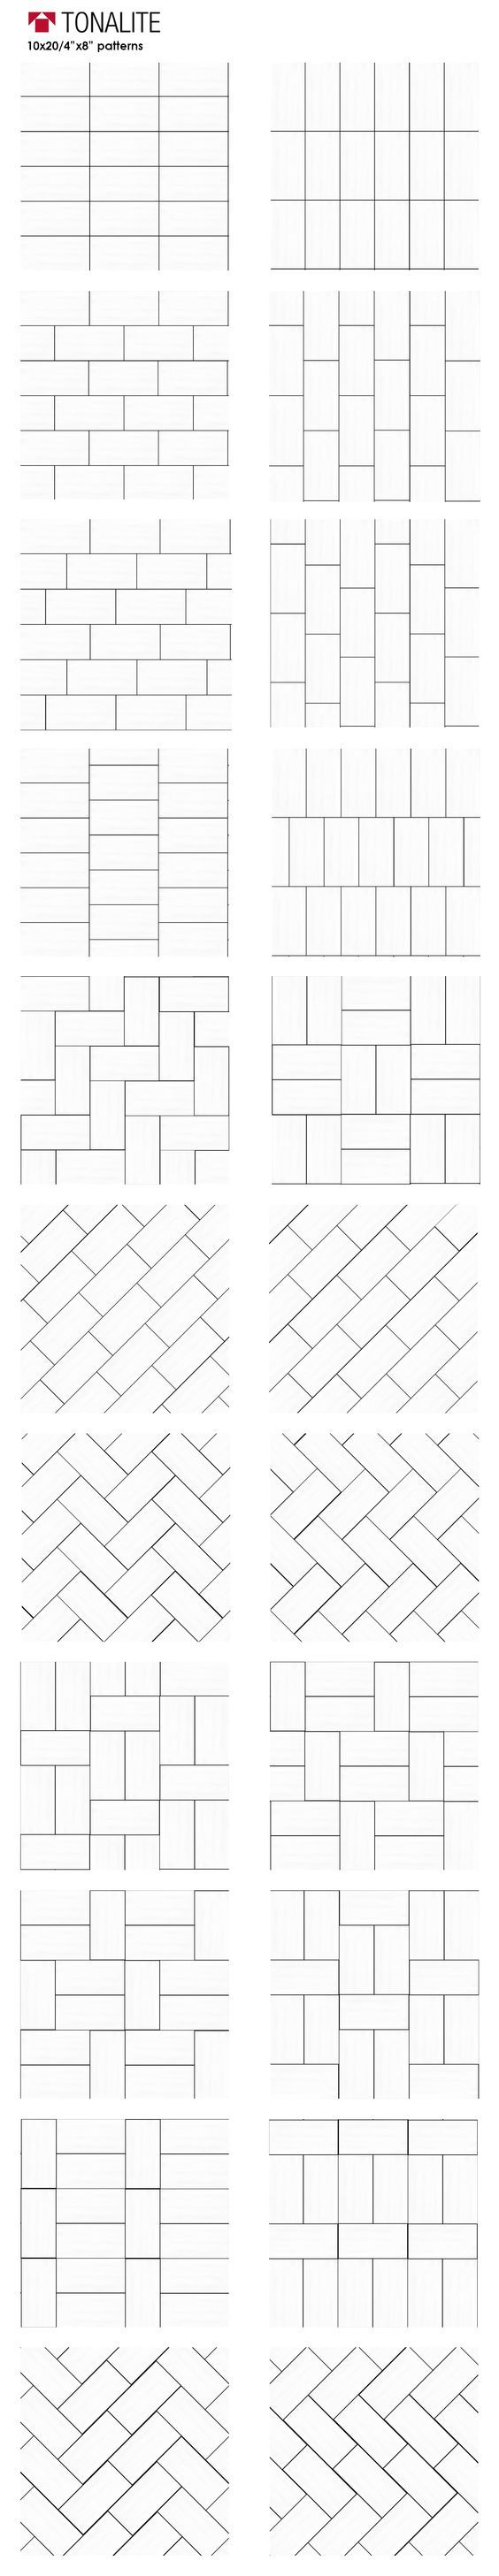 37 best Tiles images on Pinterest | Homes, Architecture and Bath